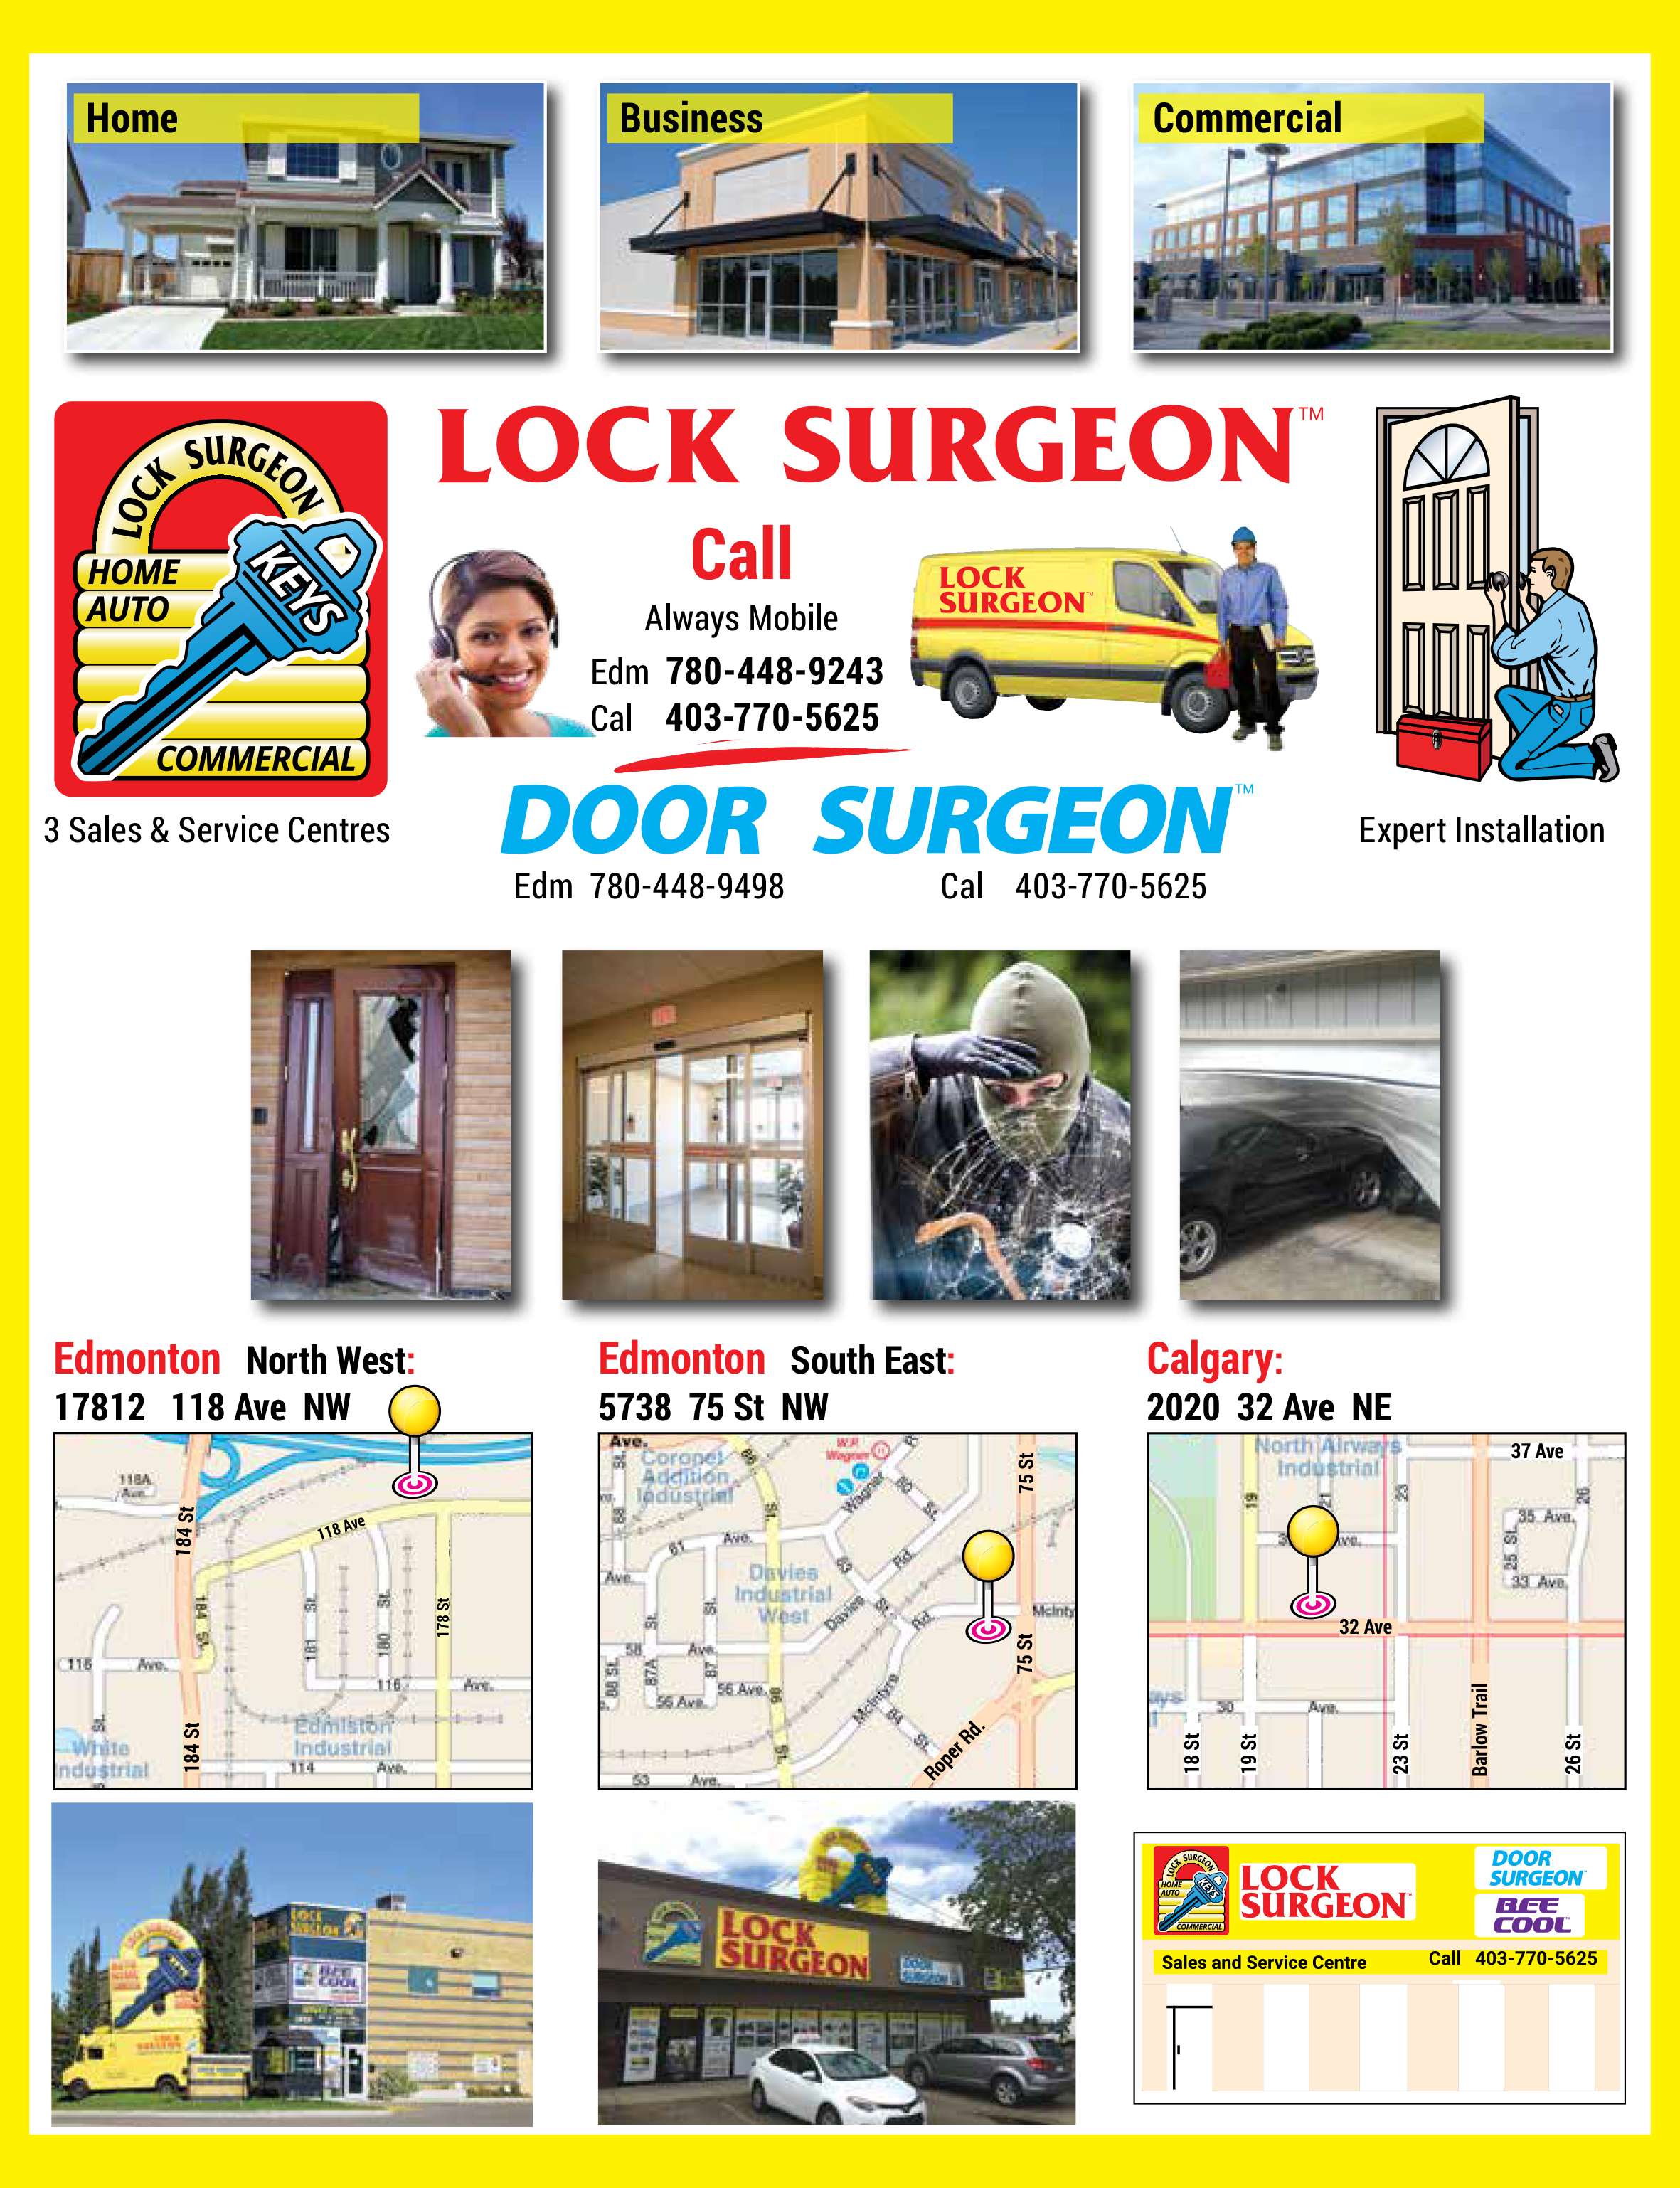 Door Surgeon provides in-store sales and service as well as mobile door service and installation. Visit one of our sales and service locations at Edmonton Northwest 17812-118 Ave NW, Edmonton Southeast 5738-75 St NW, Calgary 2020-32 Ave NE